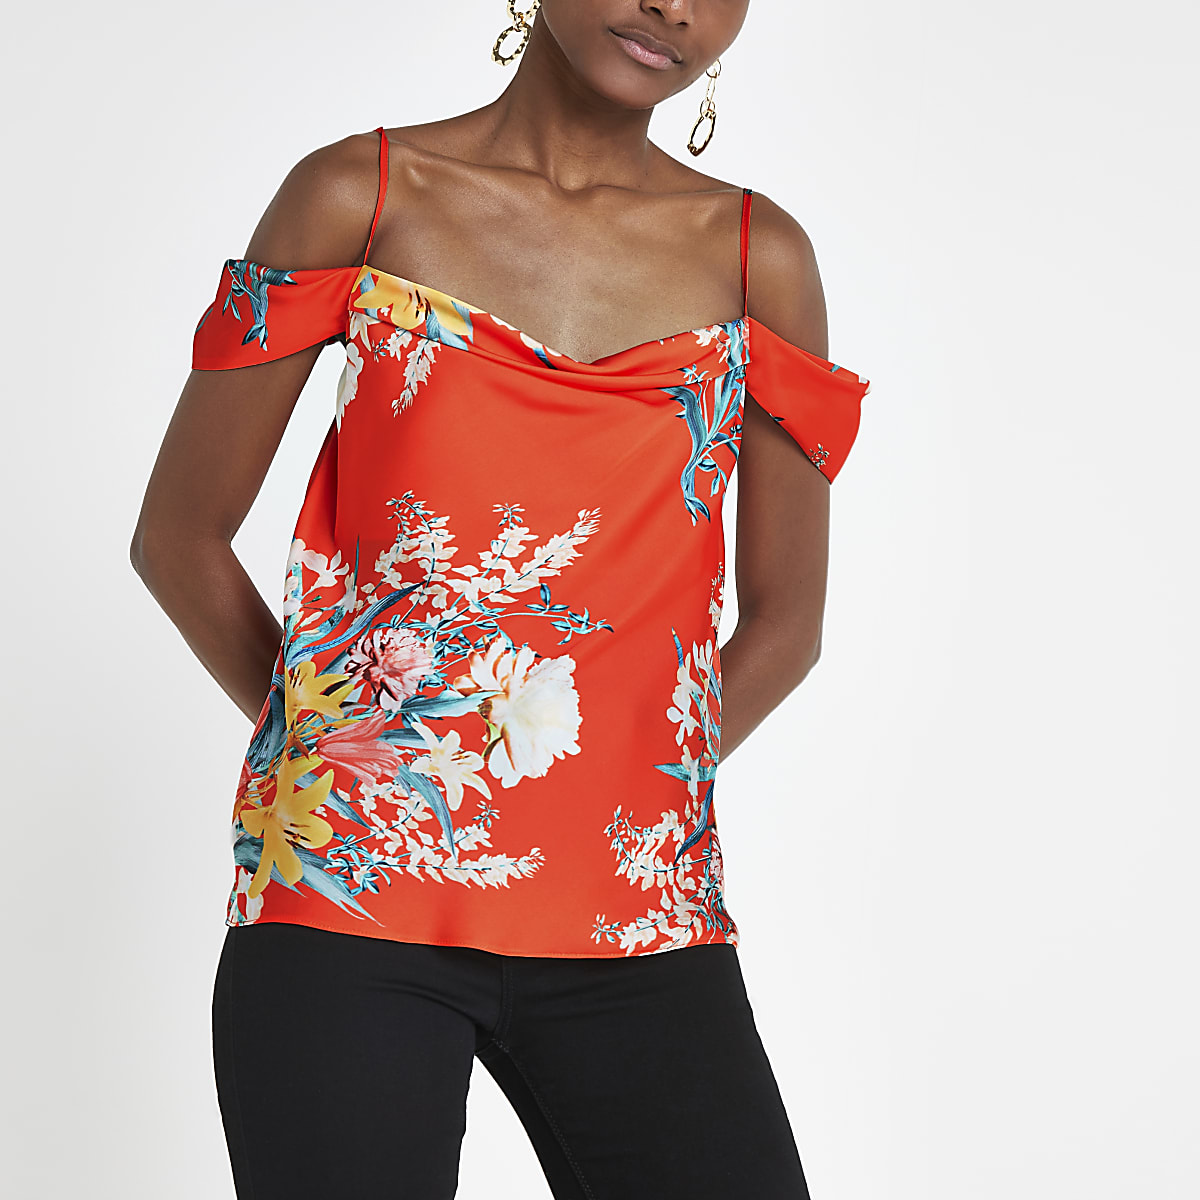 419a253f022b84 Red floral cowl bardot neck cami top - Bardot / Cold Shoulder Tops - Tops -  women